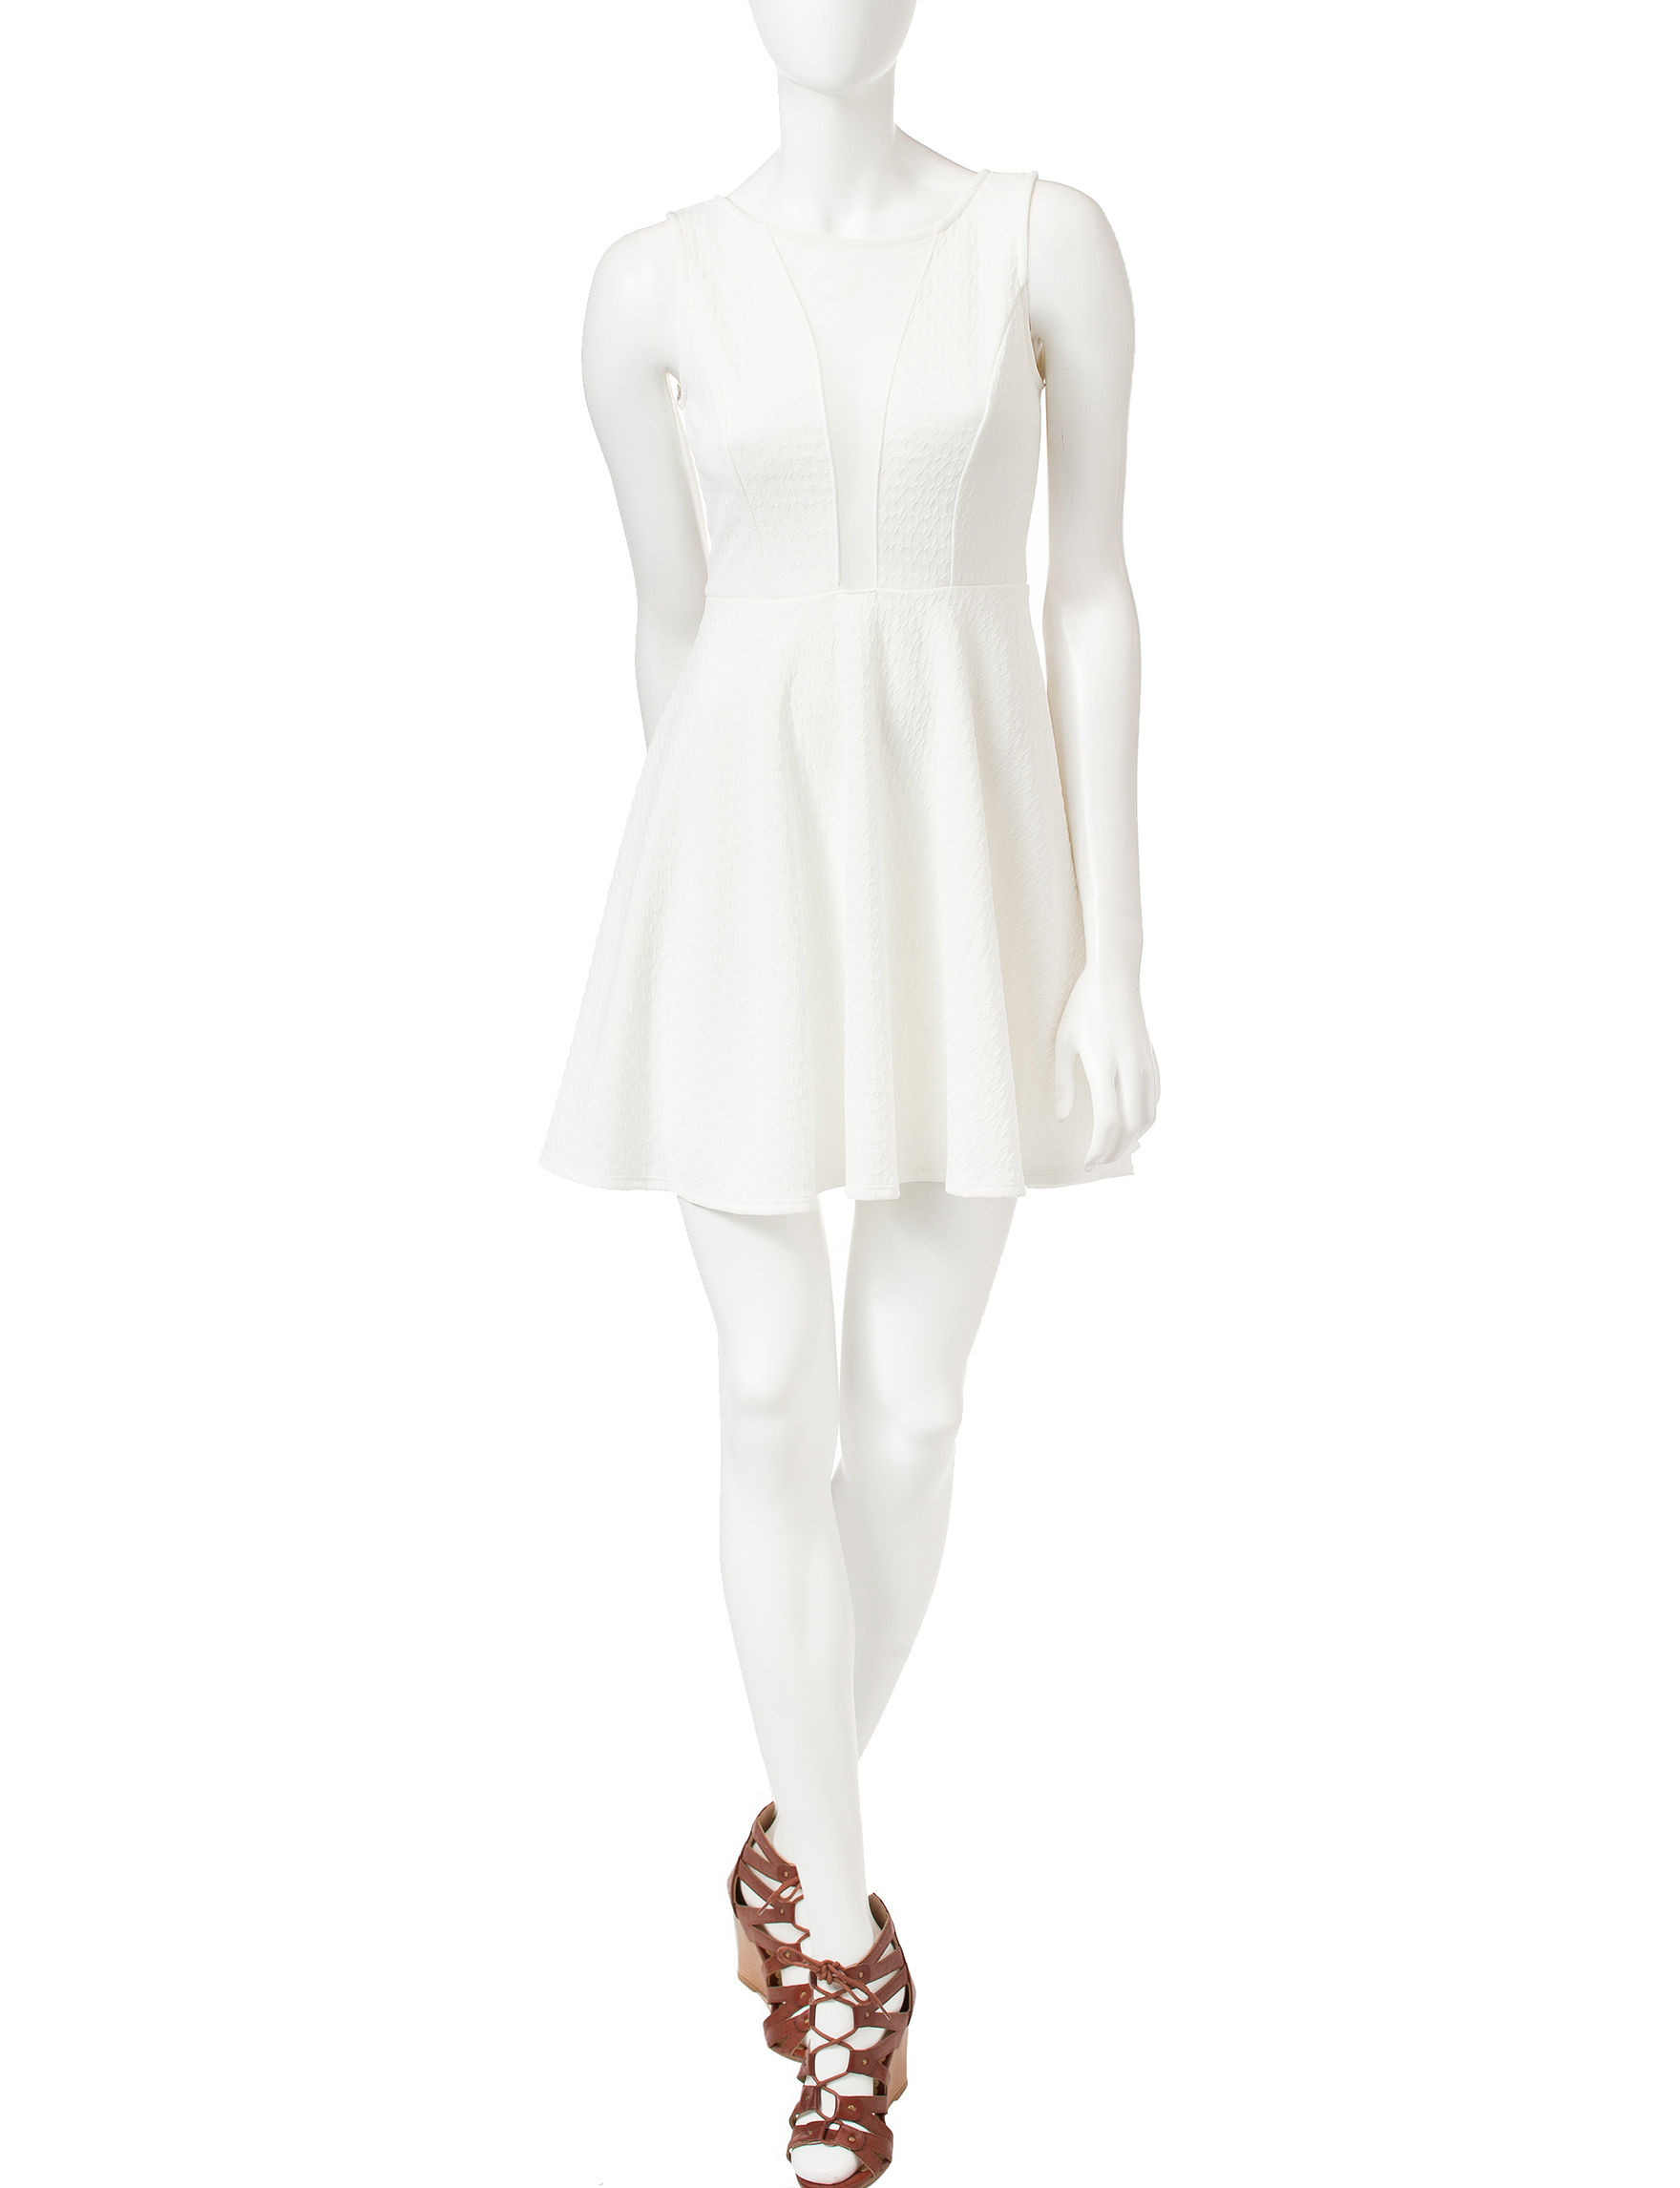 Romeo + Juliet Couture White Cocktail & Party Shift Dresses